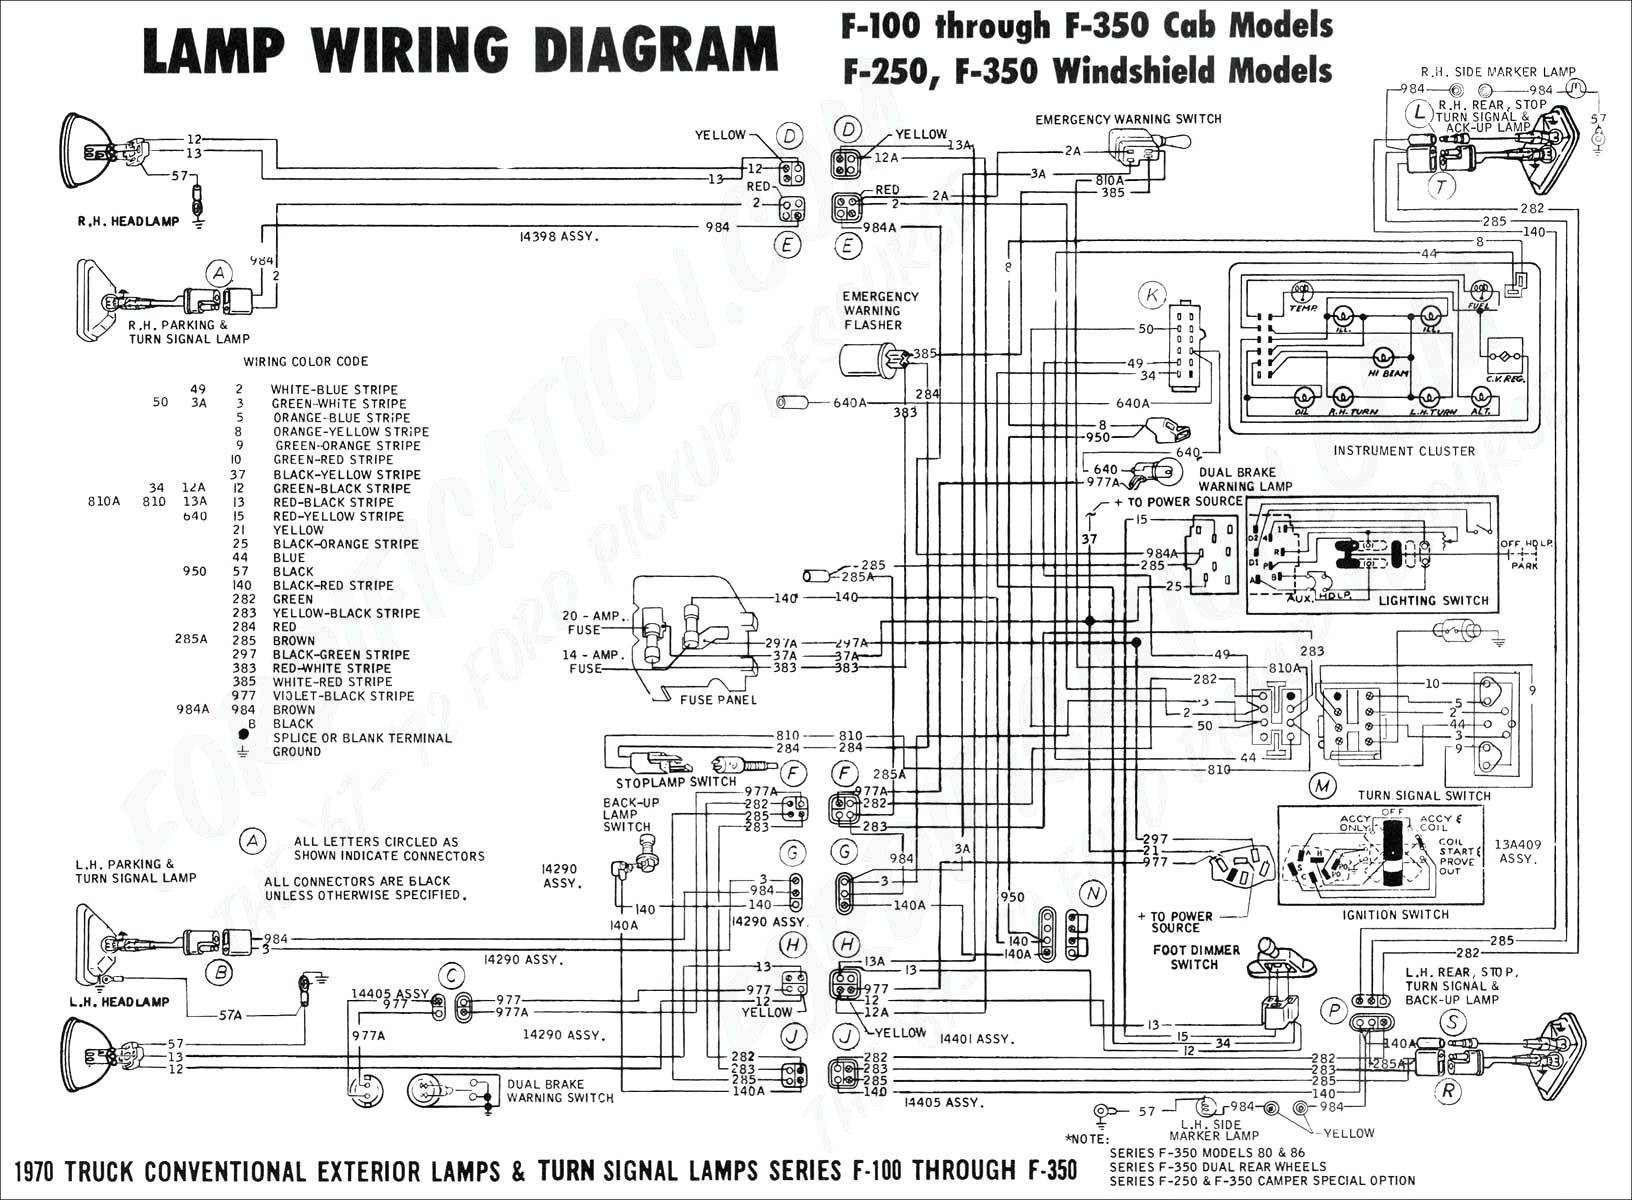 Chevy S10 Tail Light Wiring Diagram 92 S10 Tail Light Wiring Diagram Schema Wiring Diagram Of Chevy S10 Tail Light Wiring Diagram